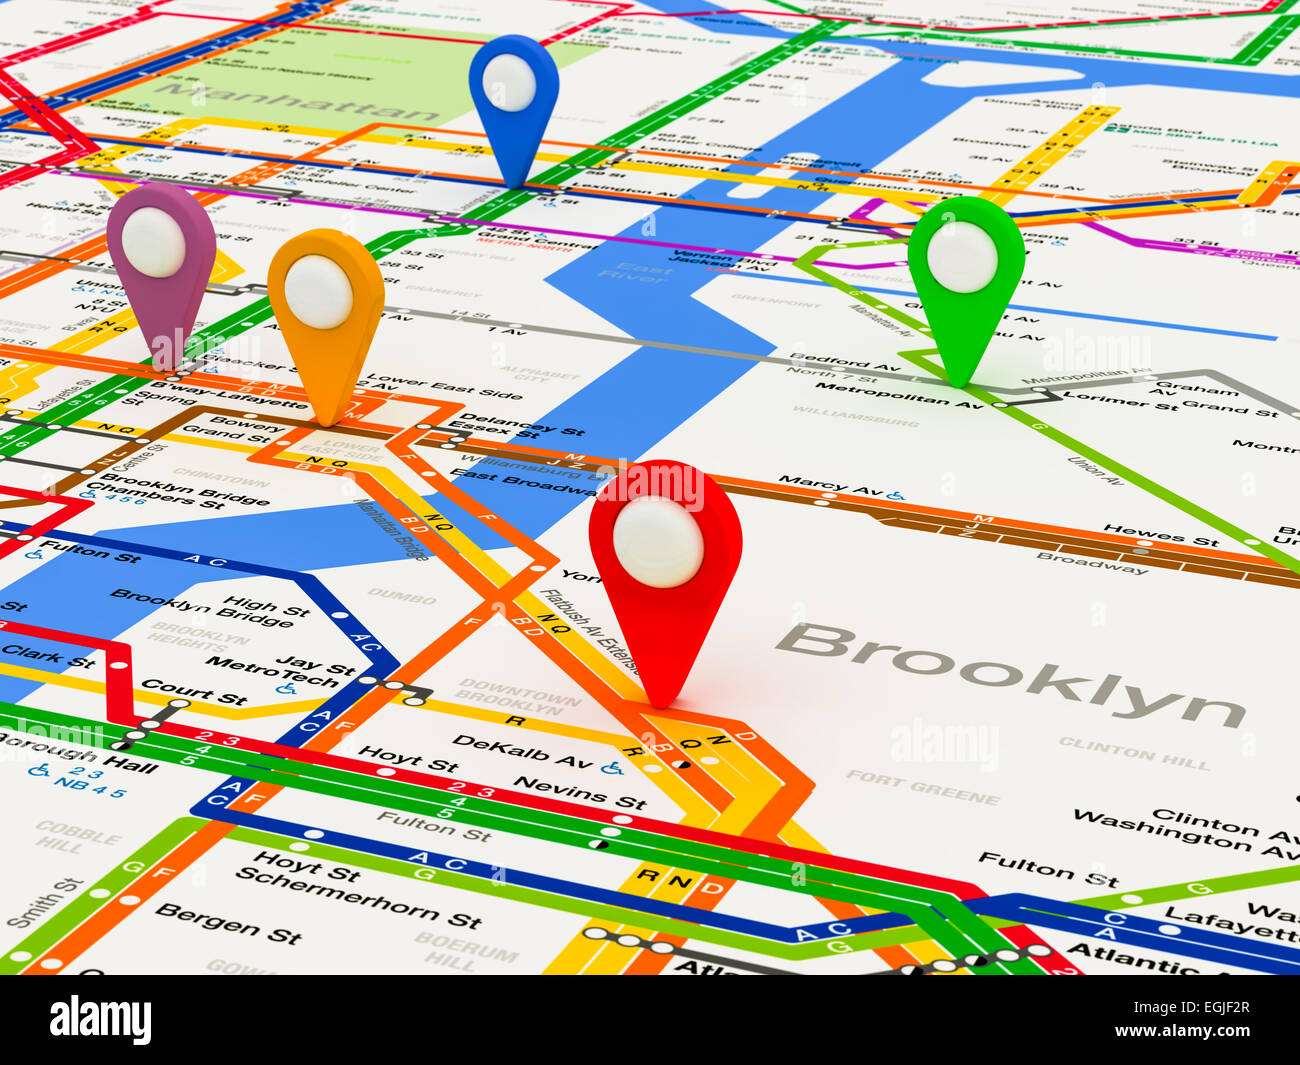 New York City Navigating Subway Map.New York Subway Map Stock Photos New York Subway Map Stock Images